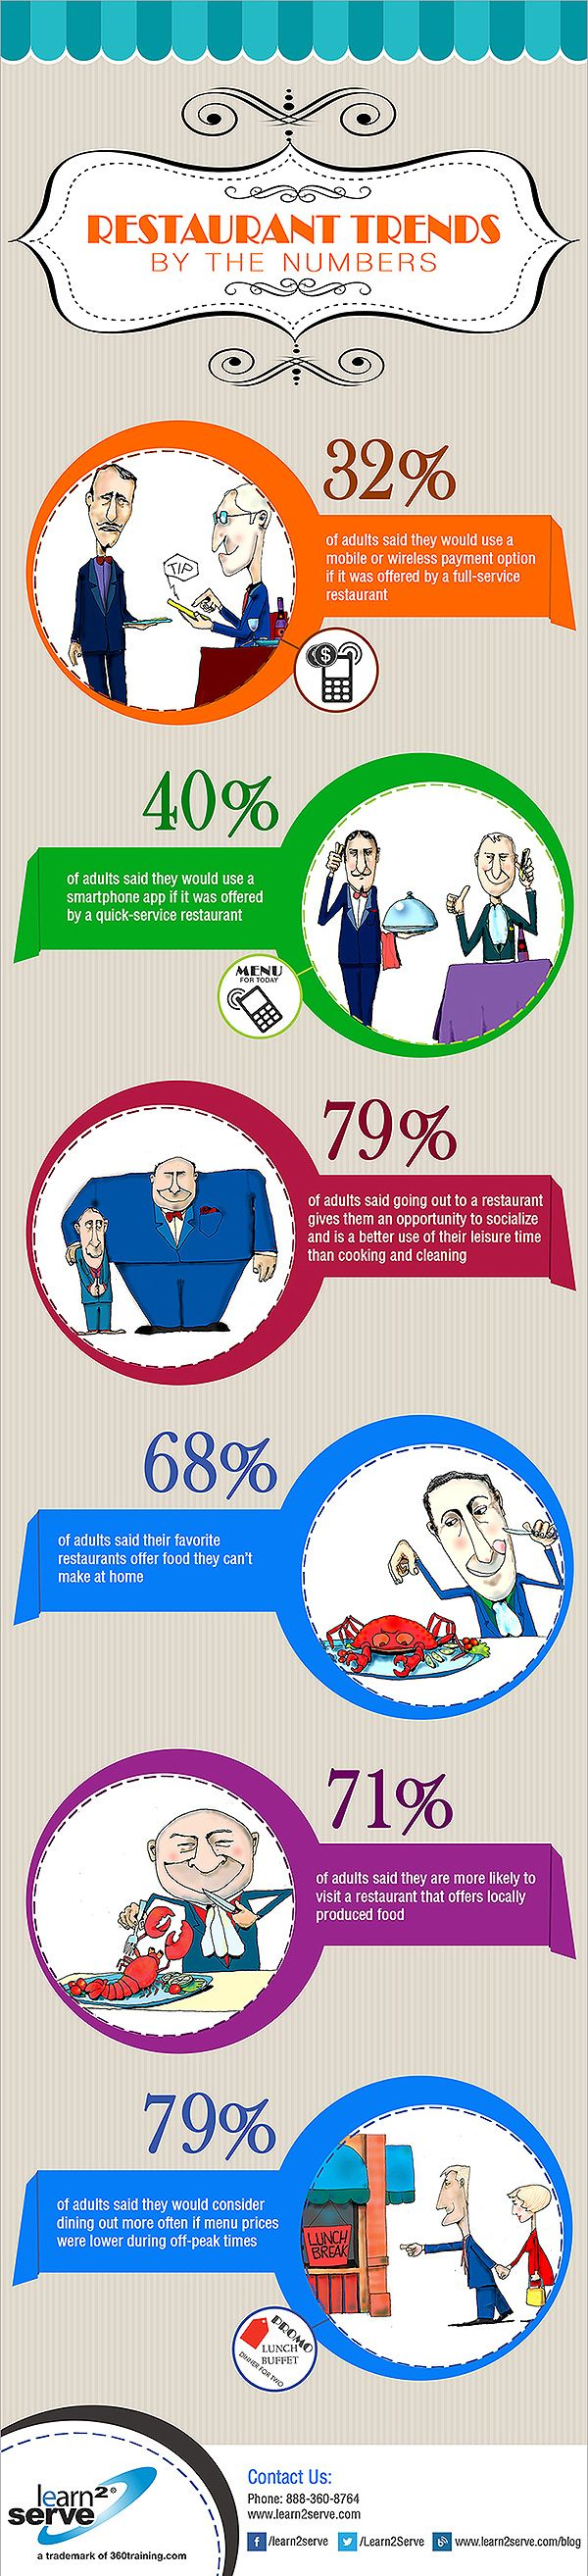 Fun #infographic about #RestaurantTrends with some interesting #mobile tidbits.